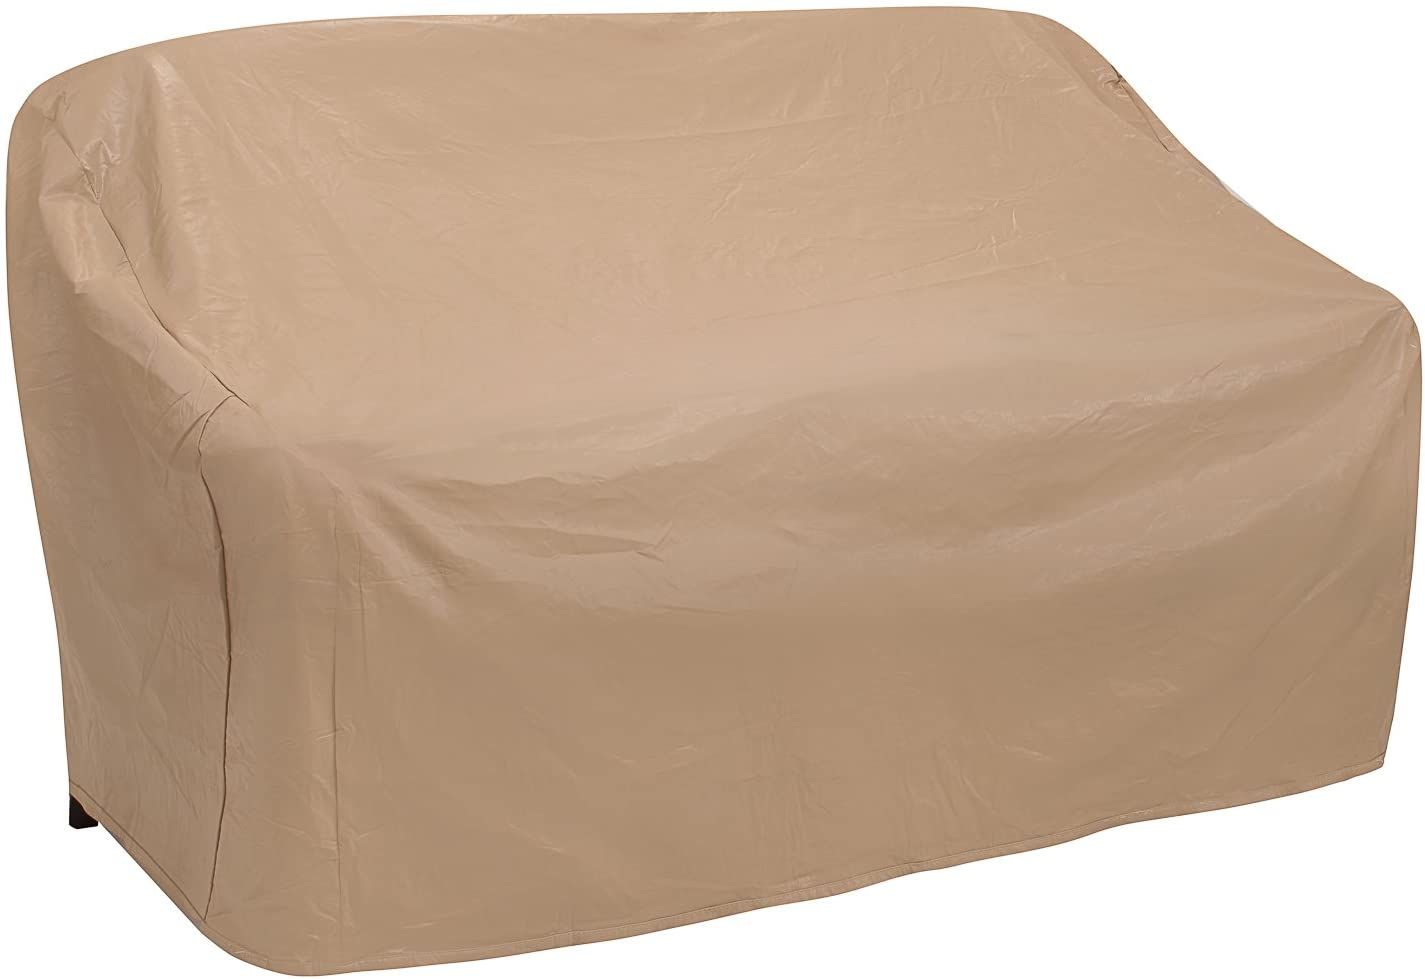 Protective Covers Weatherproof 2 Seat Wicker/Rattan Sofa Cover, X Large, Tan - 1122-TN